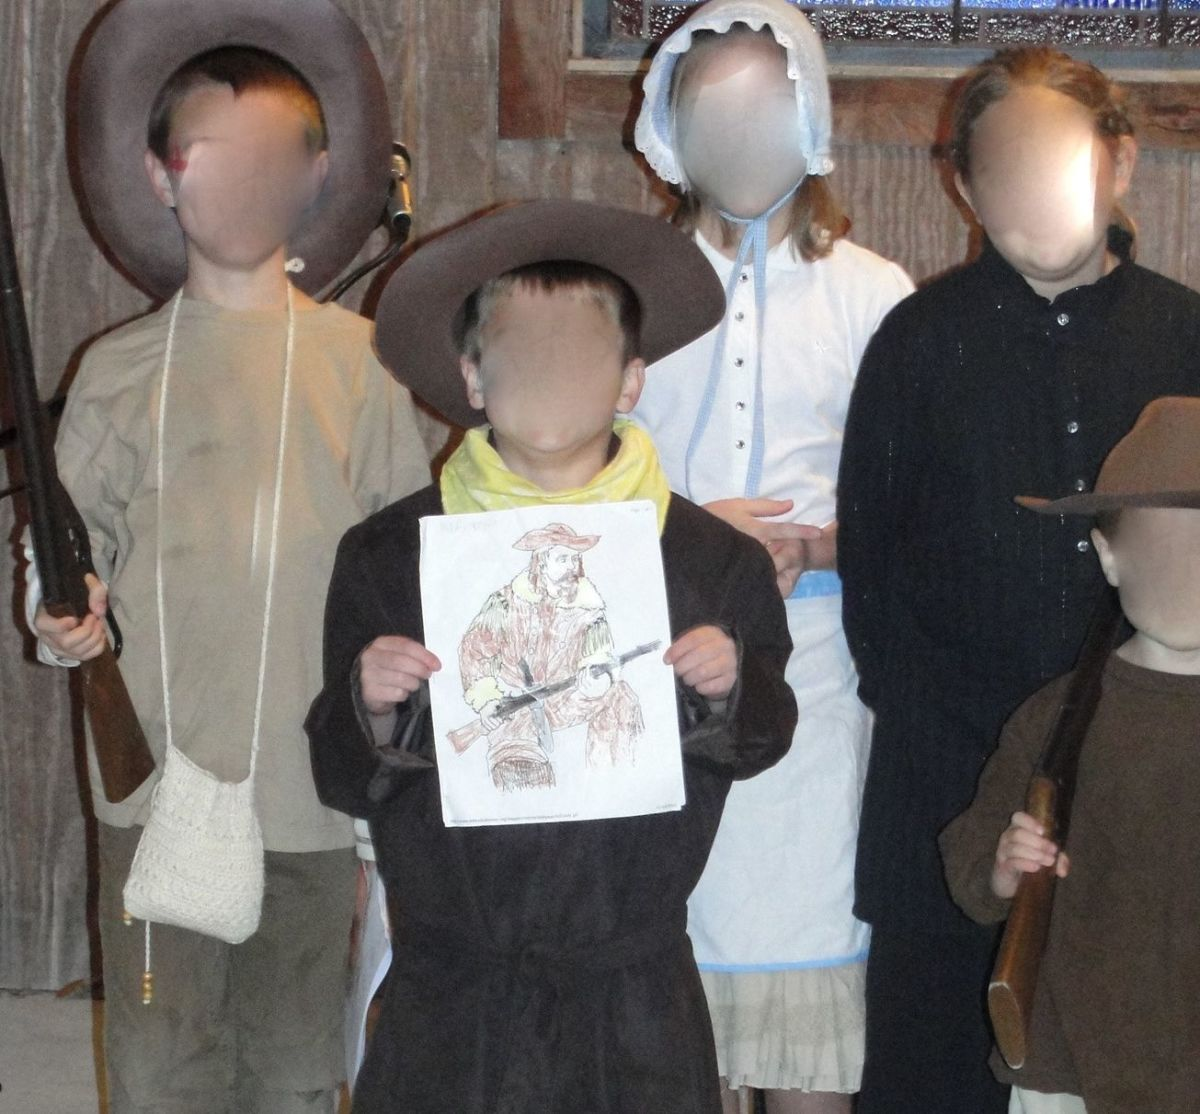 Children dressed as Jim Bridger, Buffalo Bill, Laura Ingalls Wilder, Narcissa Whitman, and Jed Smith